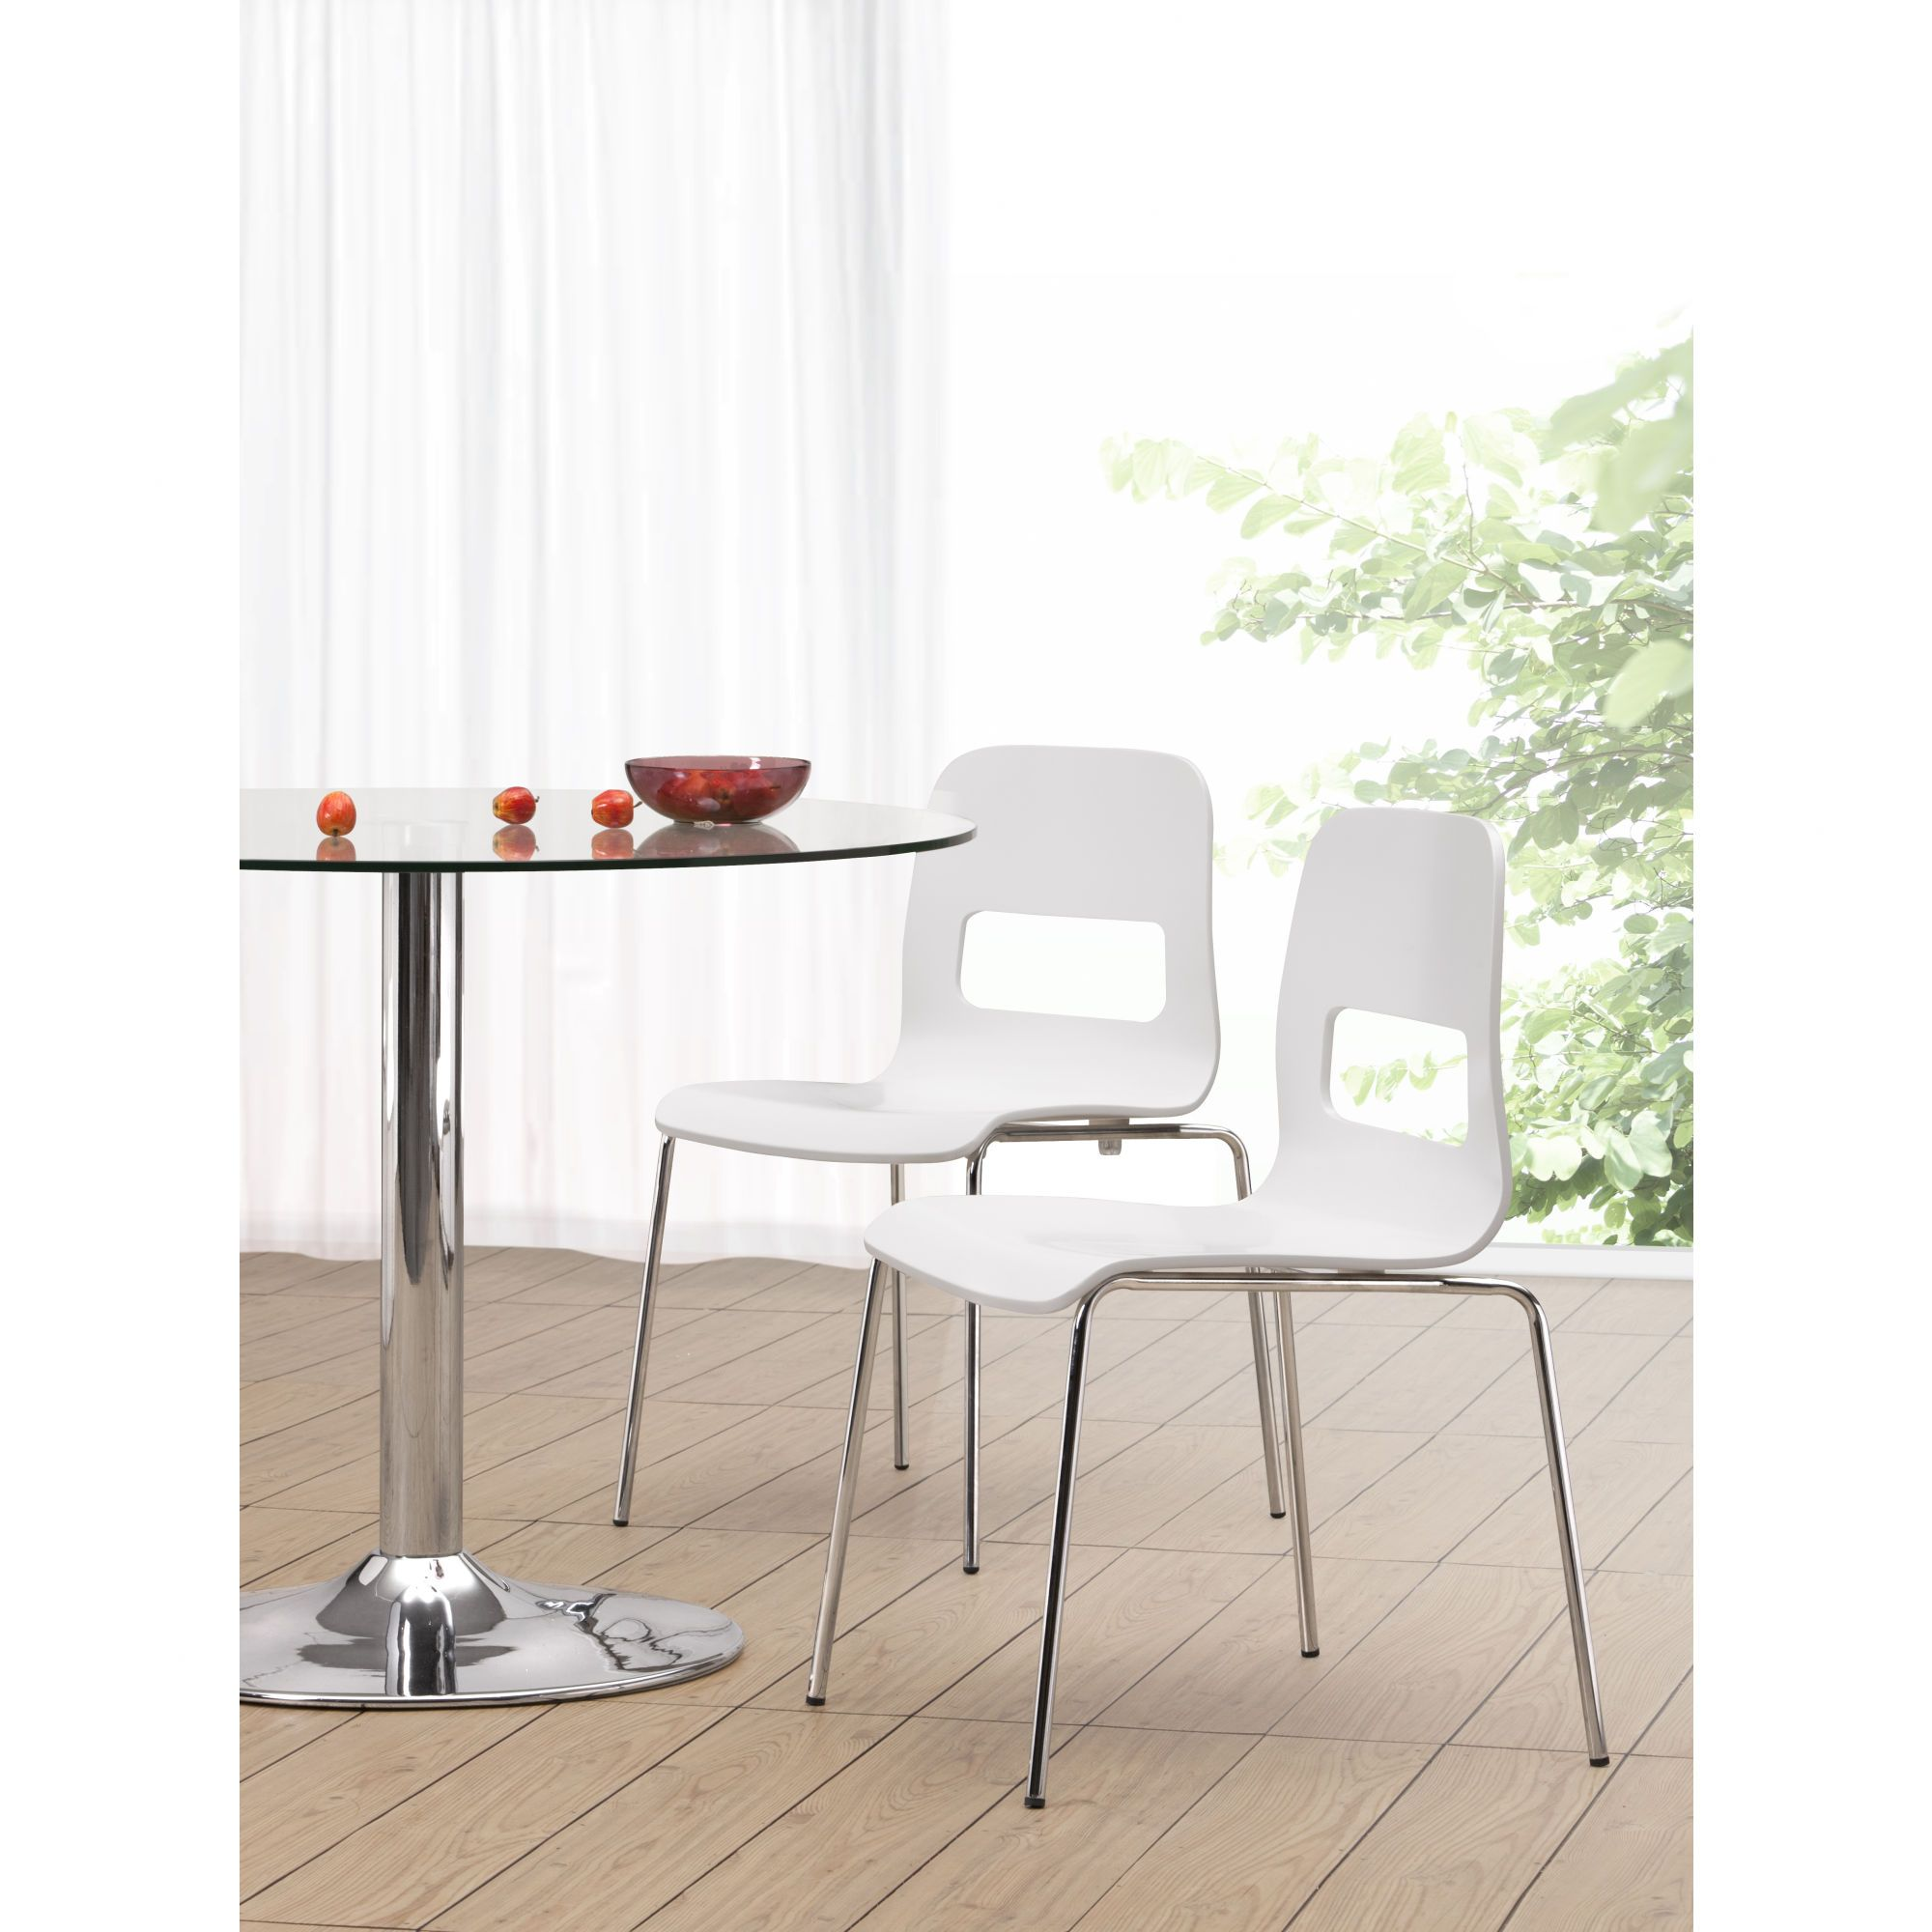 dcor design escape chair with a bent wood seat painted in a white mattegloss finish. dcor design escape chair with a bent wood seat painted in a white